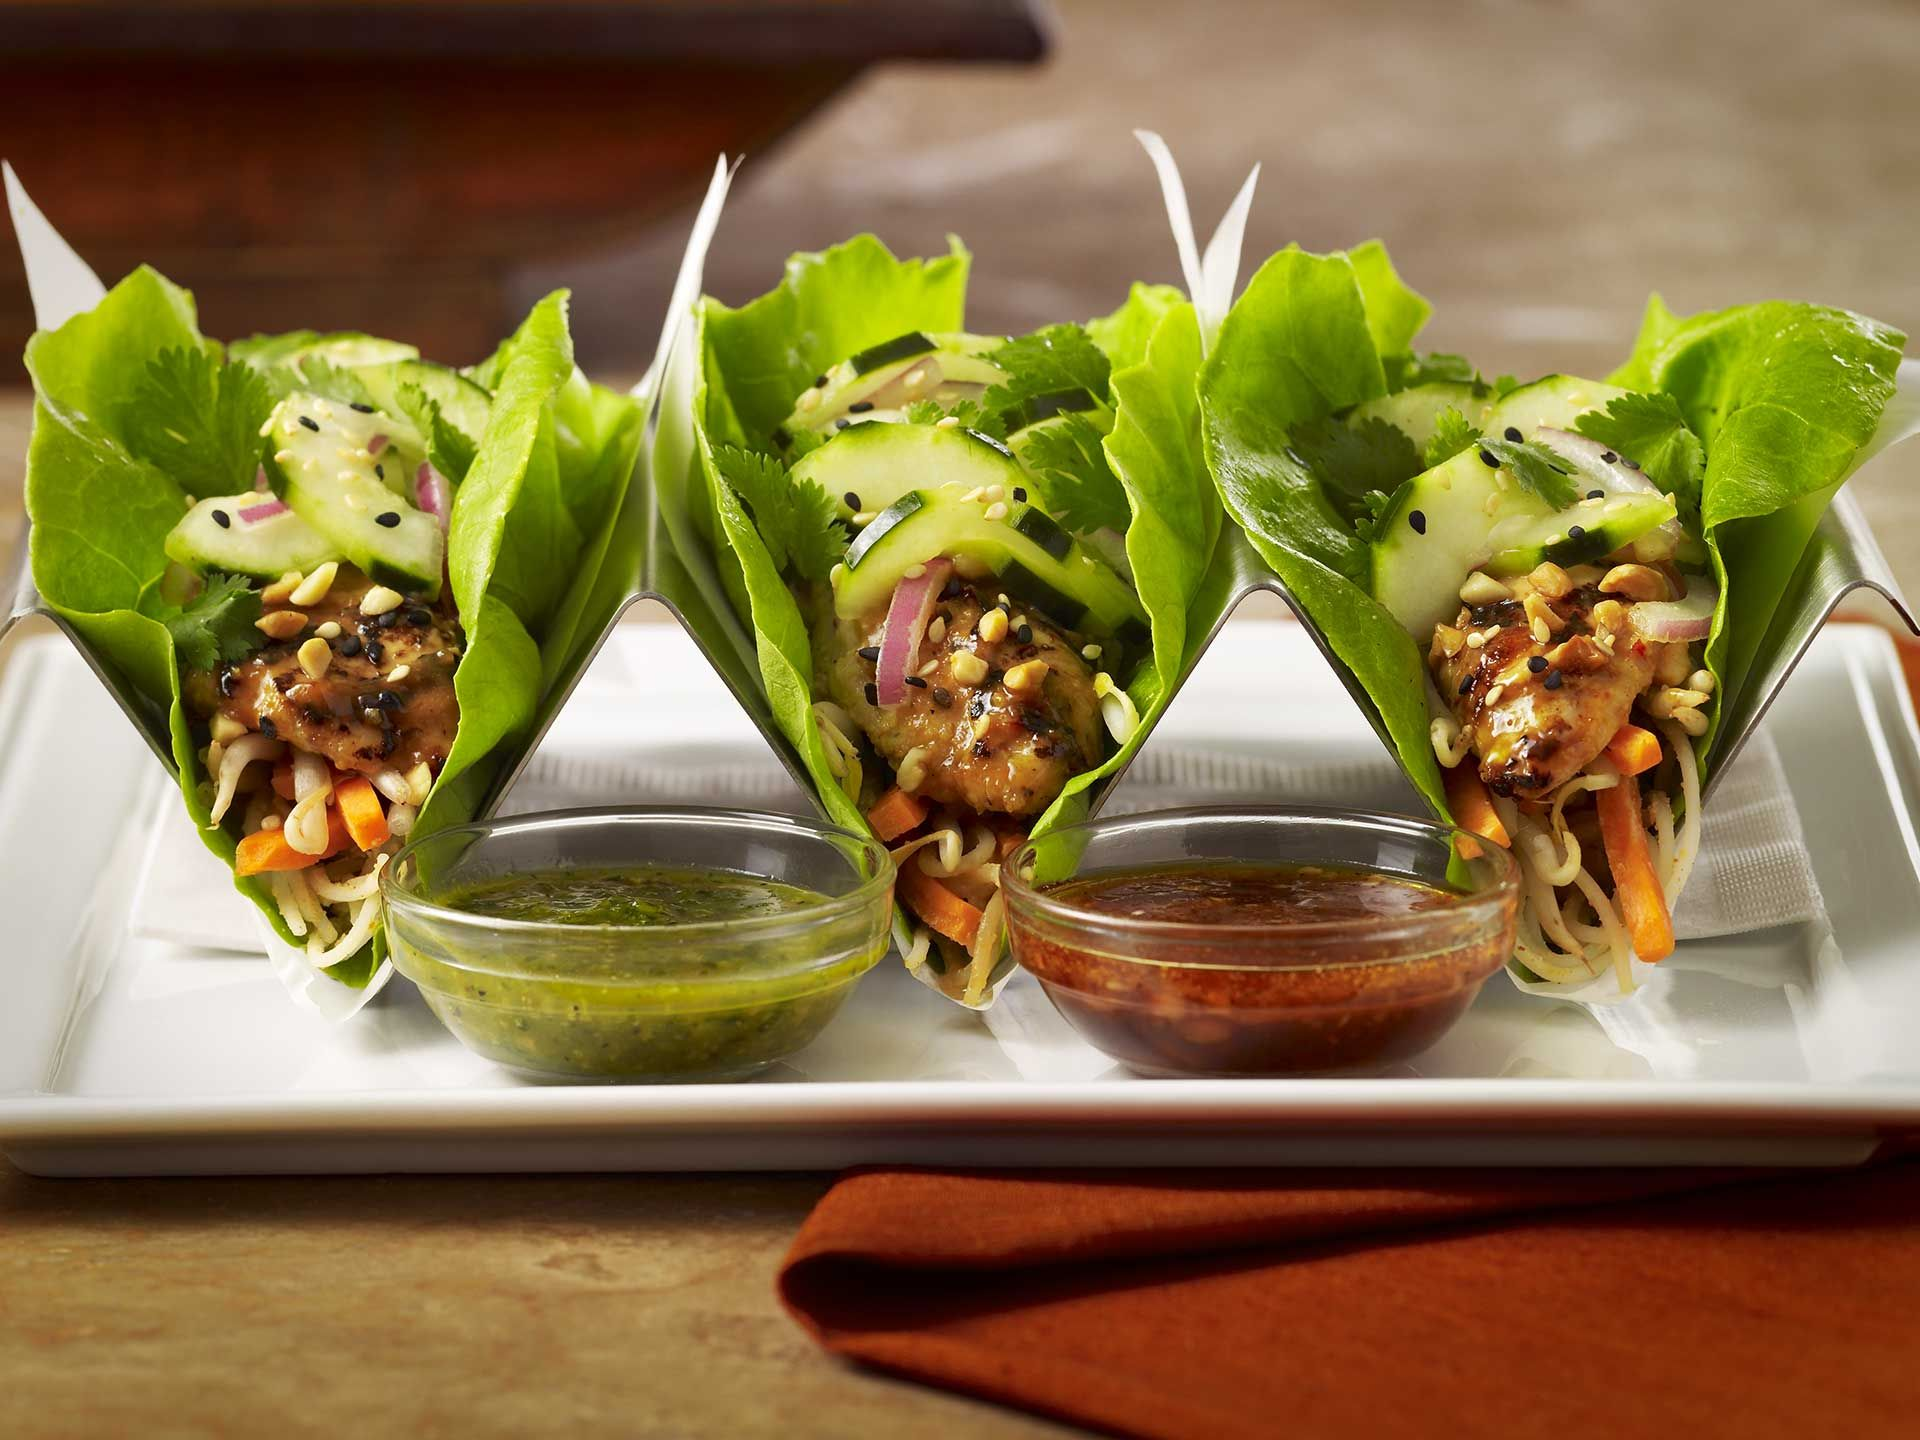 Chicken Lettuce Wrap Tacos Butter Lettuce Leaves Filled With Grilled Chicken And Your Healthy Restaurant Food Chicken Lettuce Wraps Cheesecake Factory Recipes